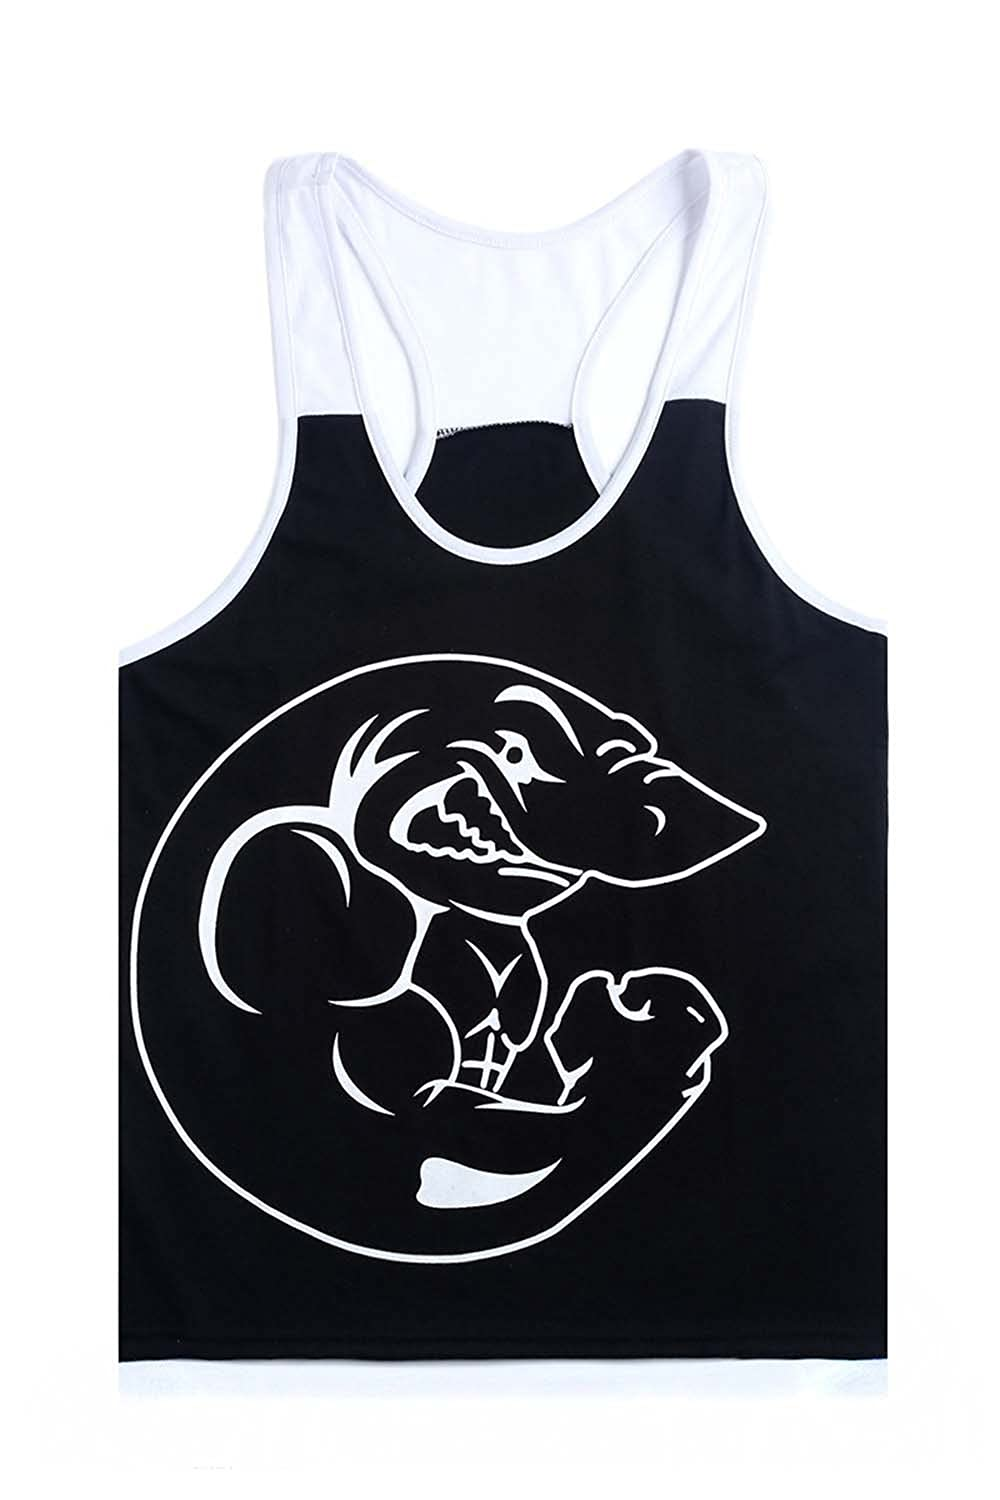 Fashion Cotton Sleeveless Shirts Tank Top Men Fitness Shirt Gym Vests